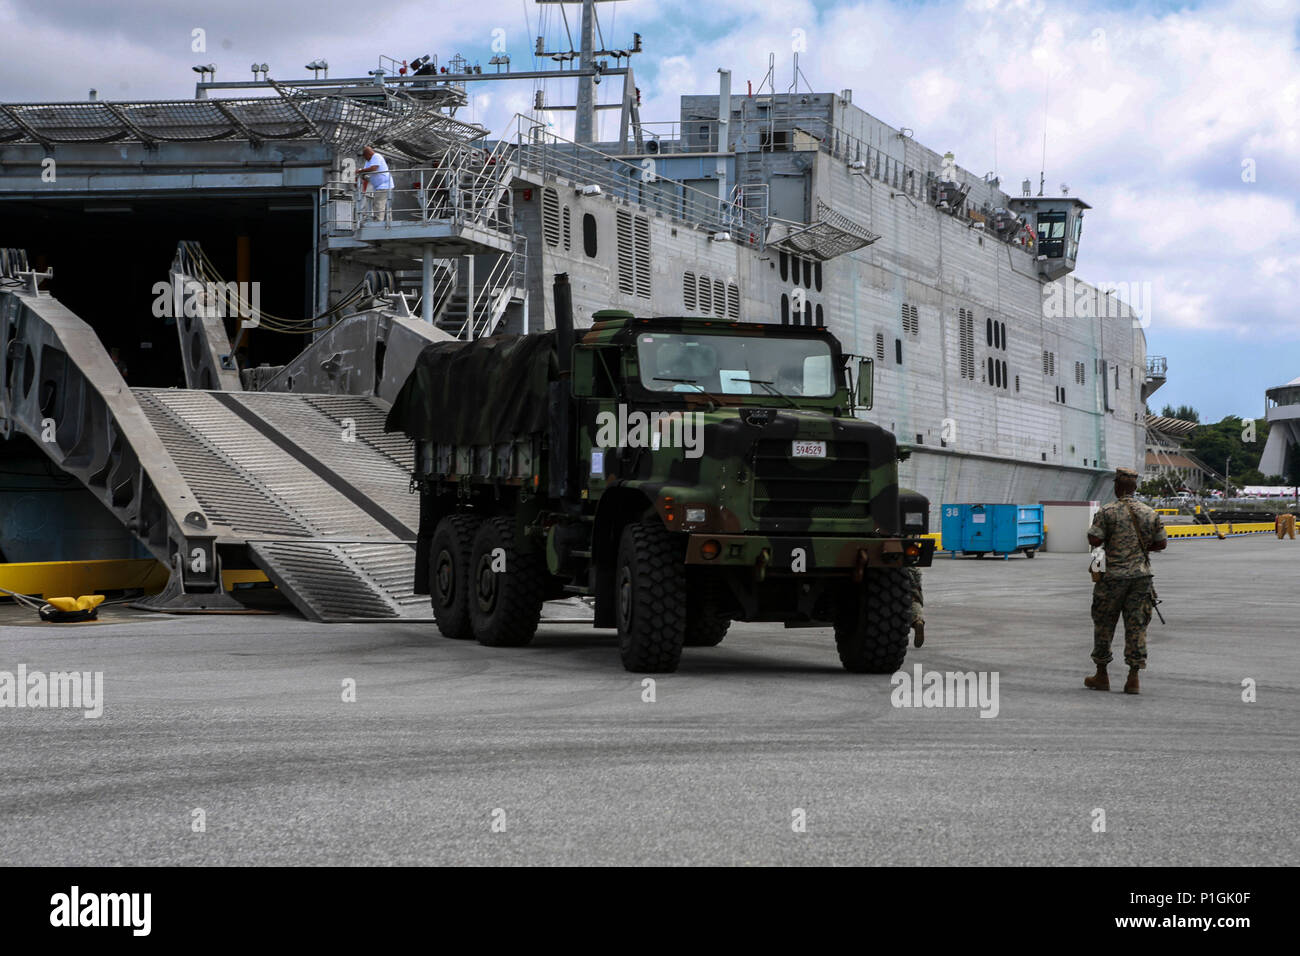 U.S. Marines with Truck Company, 3rd Marine Division, Headquarters Battalion, III Marine Expeditionary Force embark the USNS Fall River (T-EPF-4) at Naha Port, Okinawa, Japan during Blue Chromite 2017, October 28, 2016. Blue Chromite is a U.S. – only exercise which strengthens the Navy-Marine Corps expeditionary, amphibious rapid-response capabilities based in Okinawa and the greater Indo-Asia-Pacific region. (U.S. Marine Corps photo by MCIPAC Combat Camera Lance Cpl. Tiana Boyd) - Stock Image